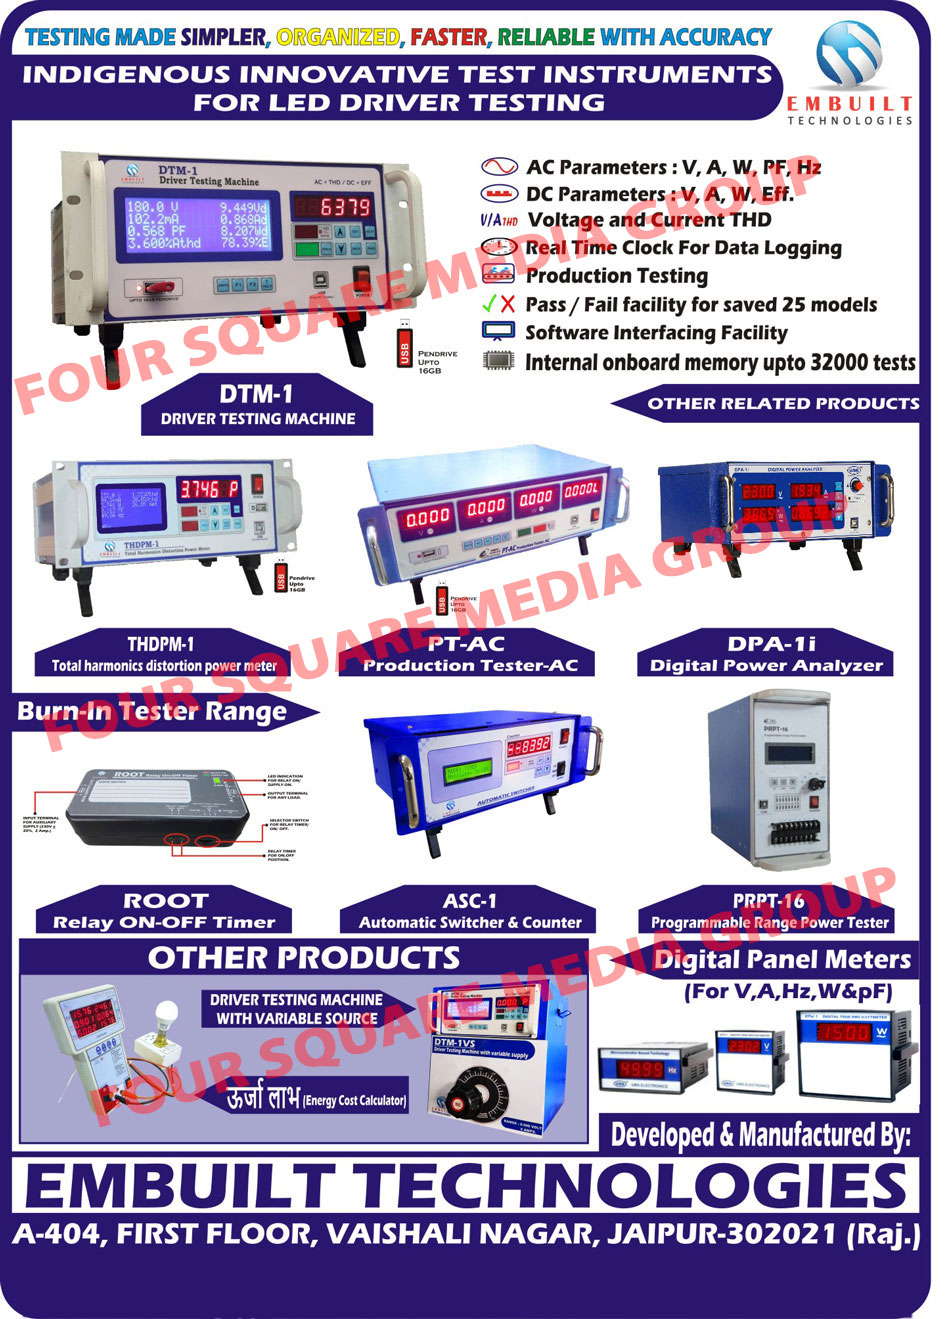 Led Driver Testing Instruments, Driver Testing Machine, Digital Panel Meter, Programmable Range Power Tester, Automatic Switcher, Automatic Counter, Relay On Off Timer, Digital Power Analyzer, AC Production Tester, Total Harmonic Distortion Power Meter